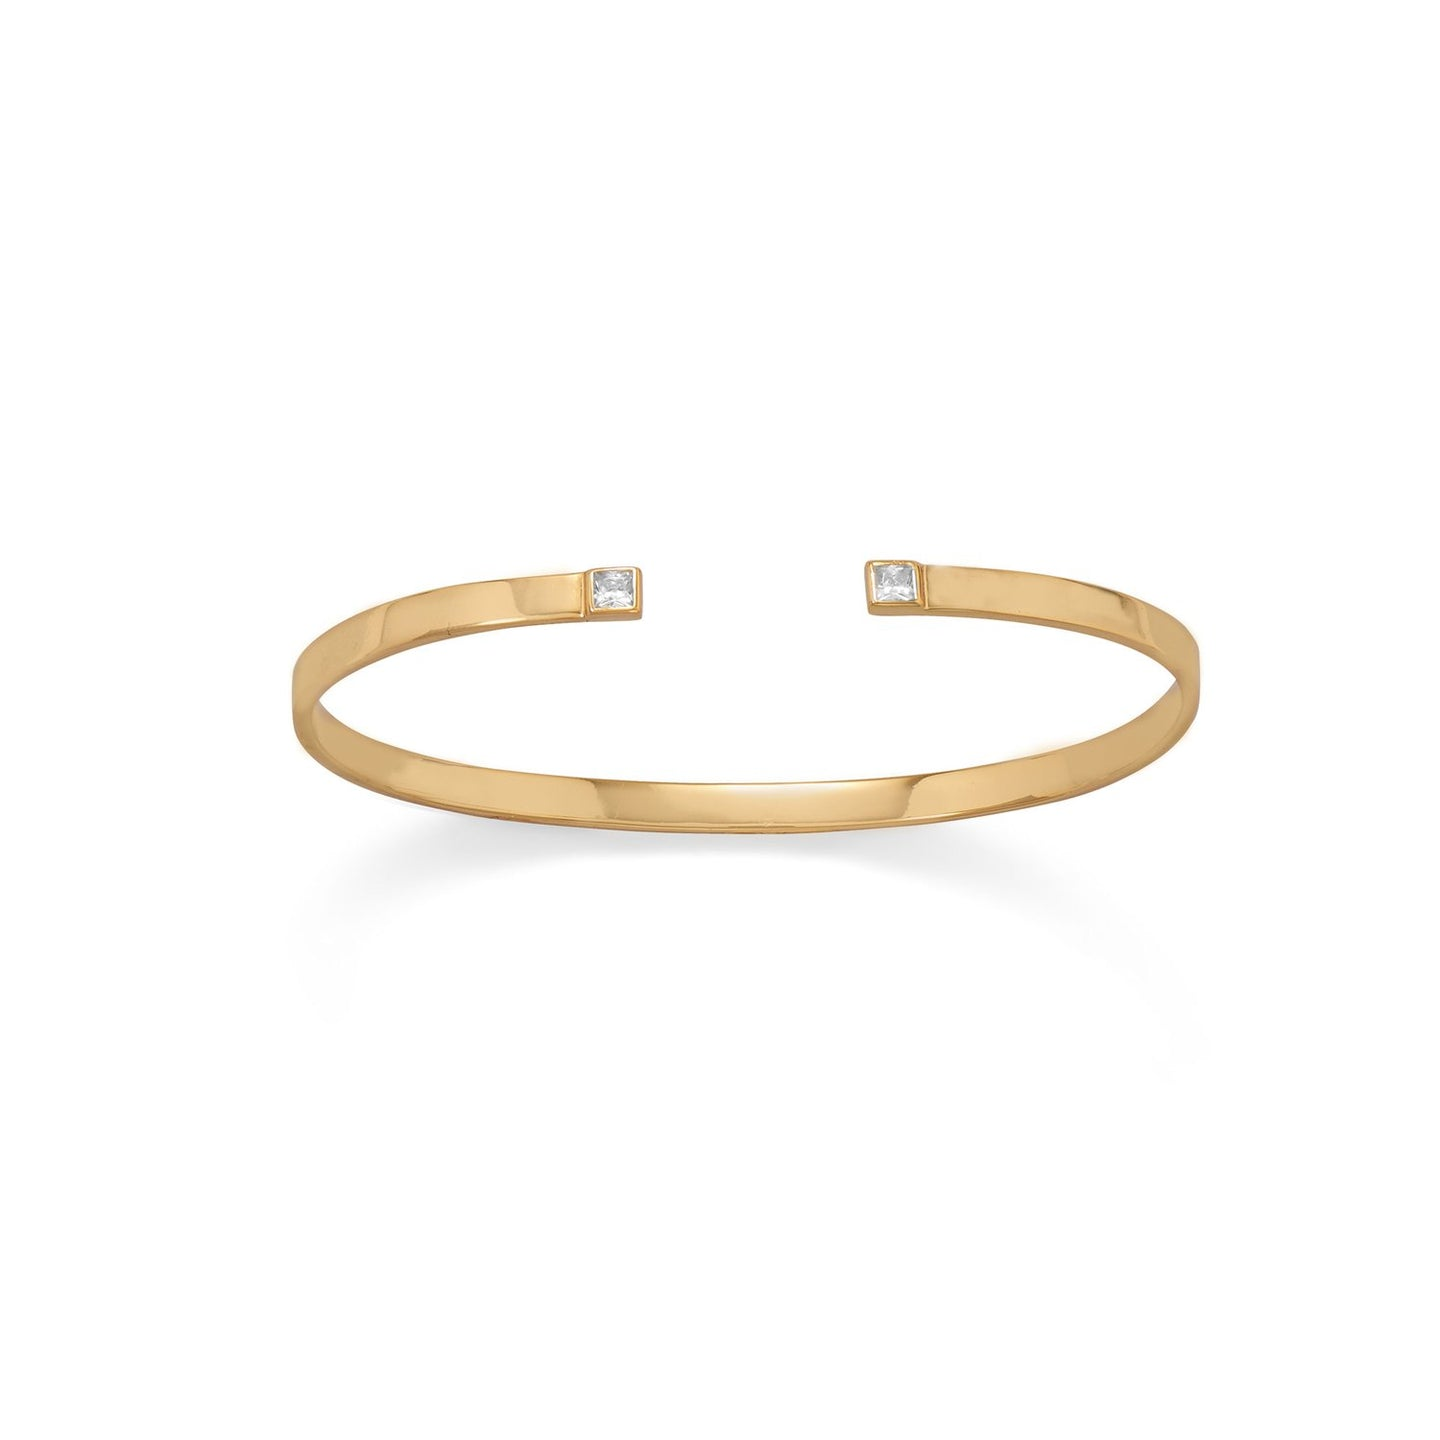 14 Karat Gold Plated CZ Thin Cuff Bracelet at 3 Barn Swallows, $100